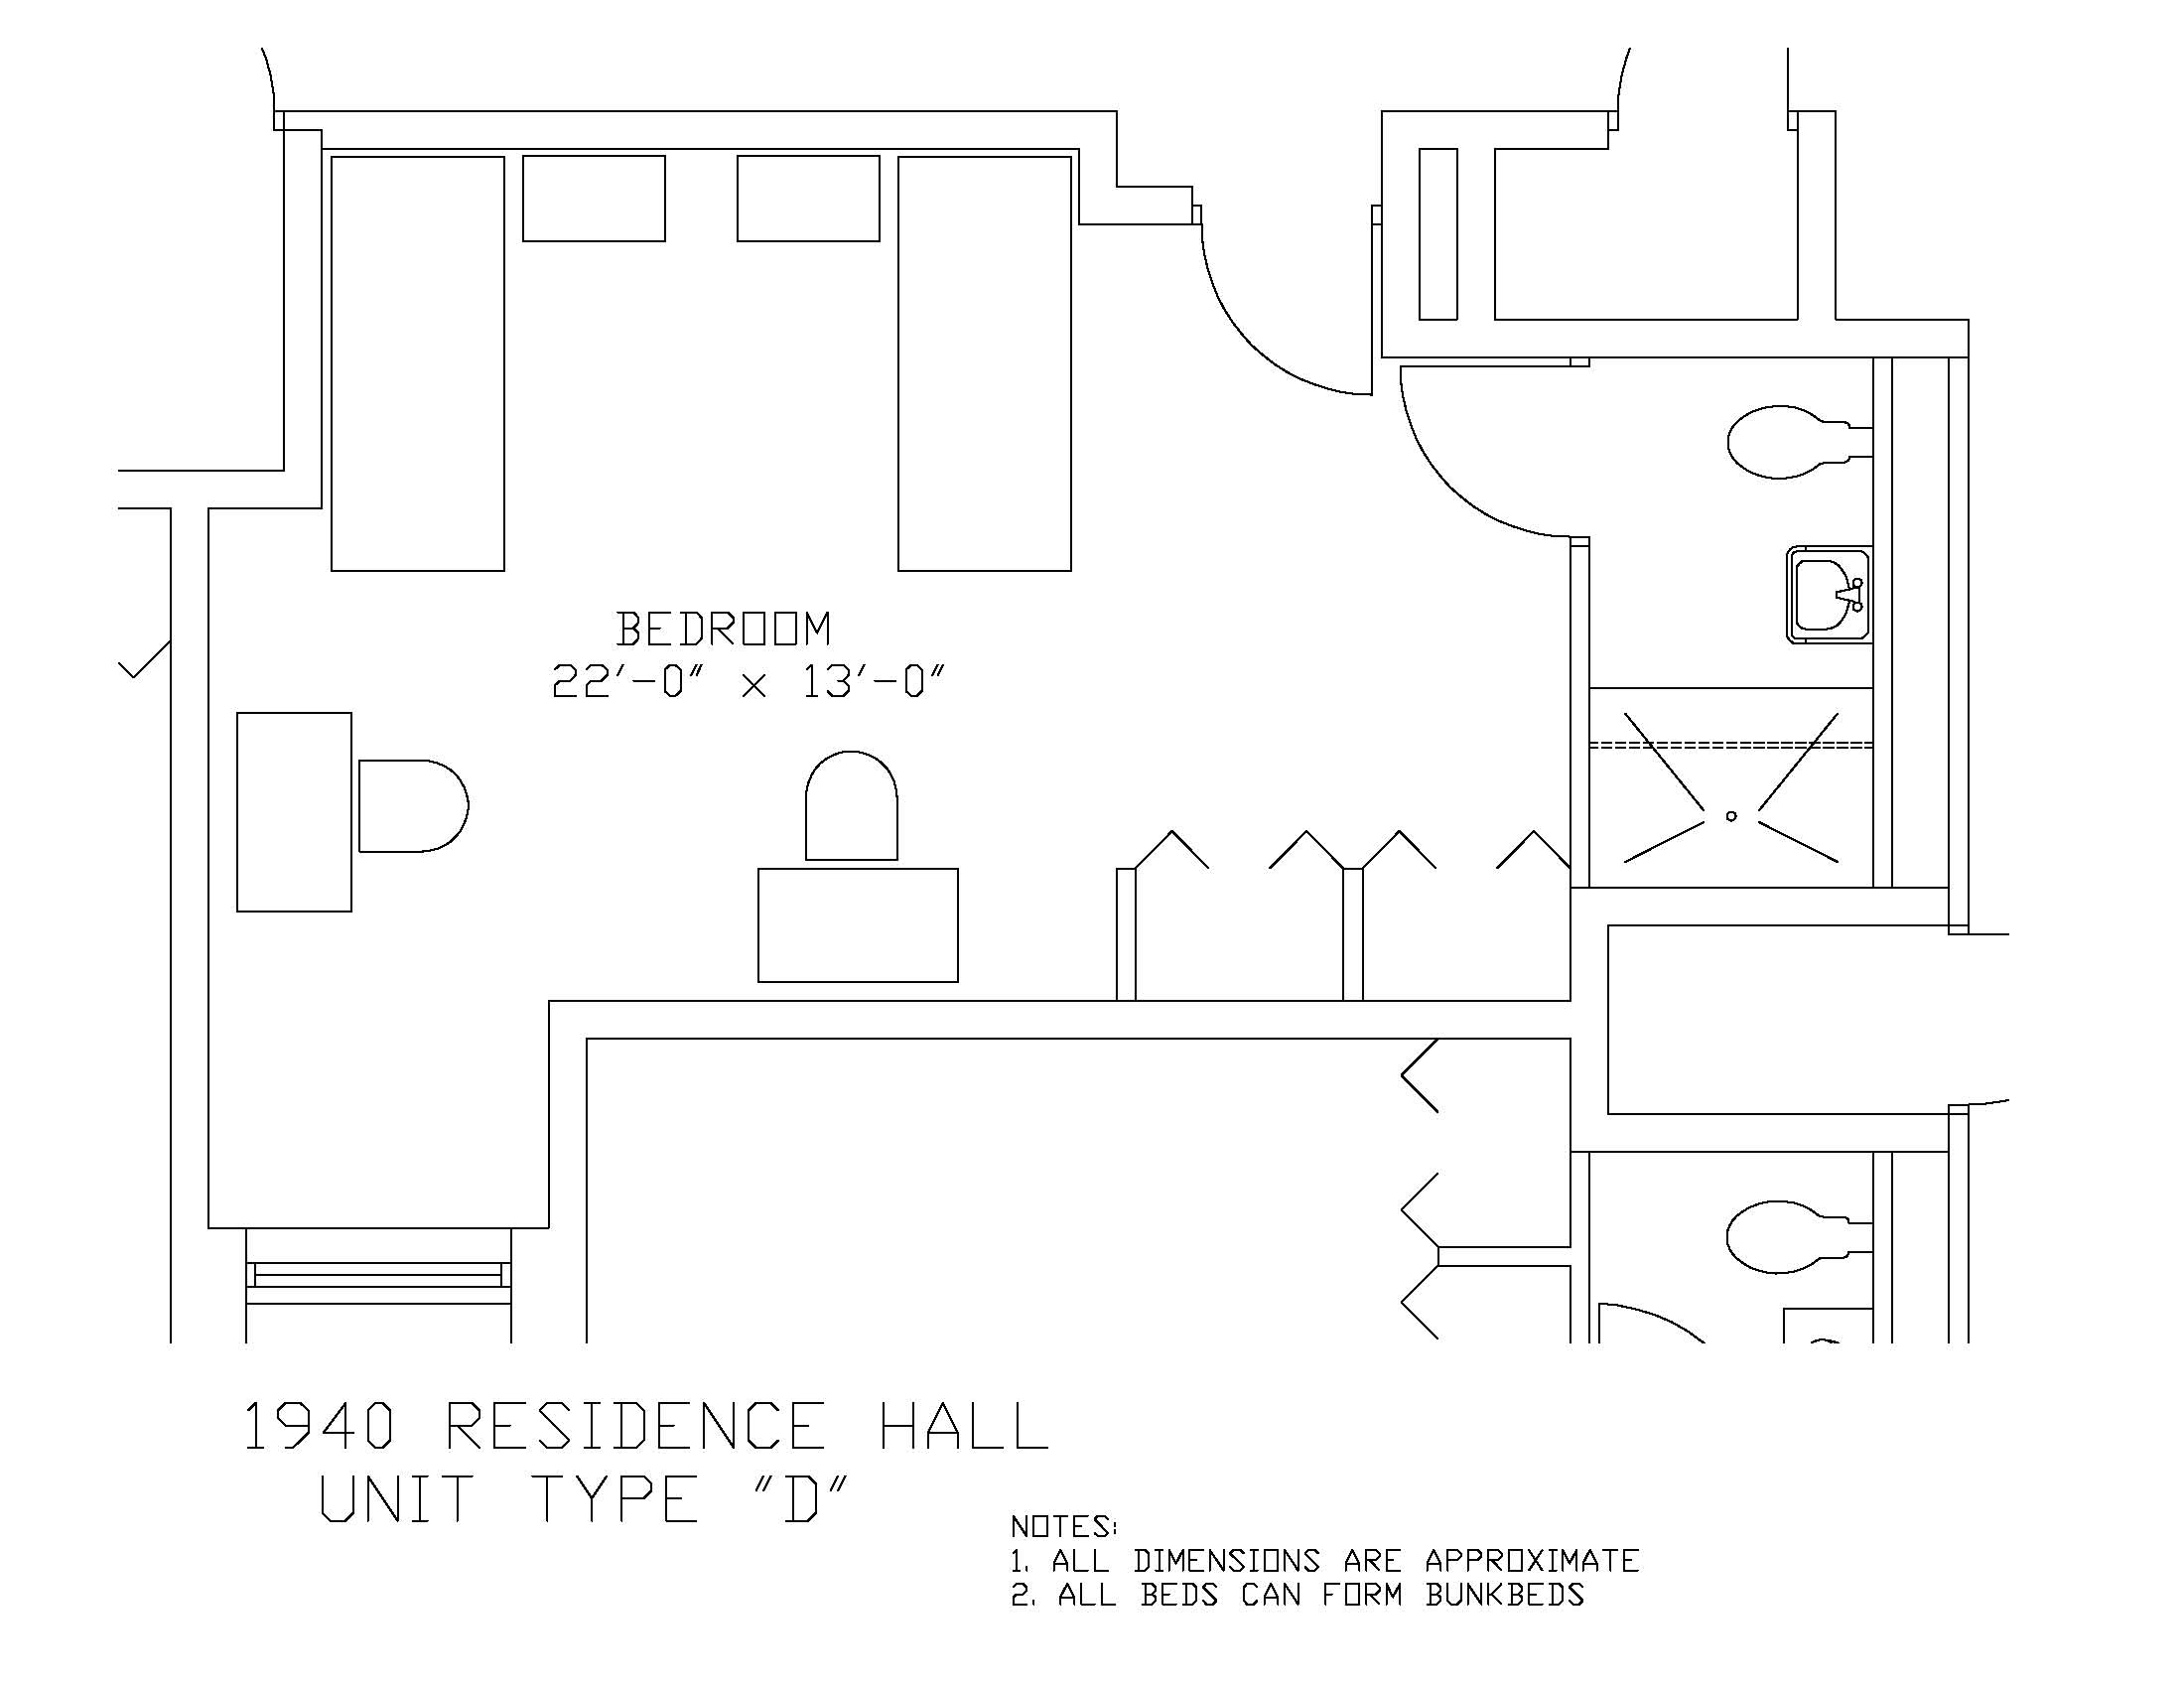 1940 Residence Hall: Type D